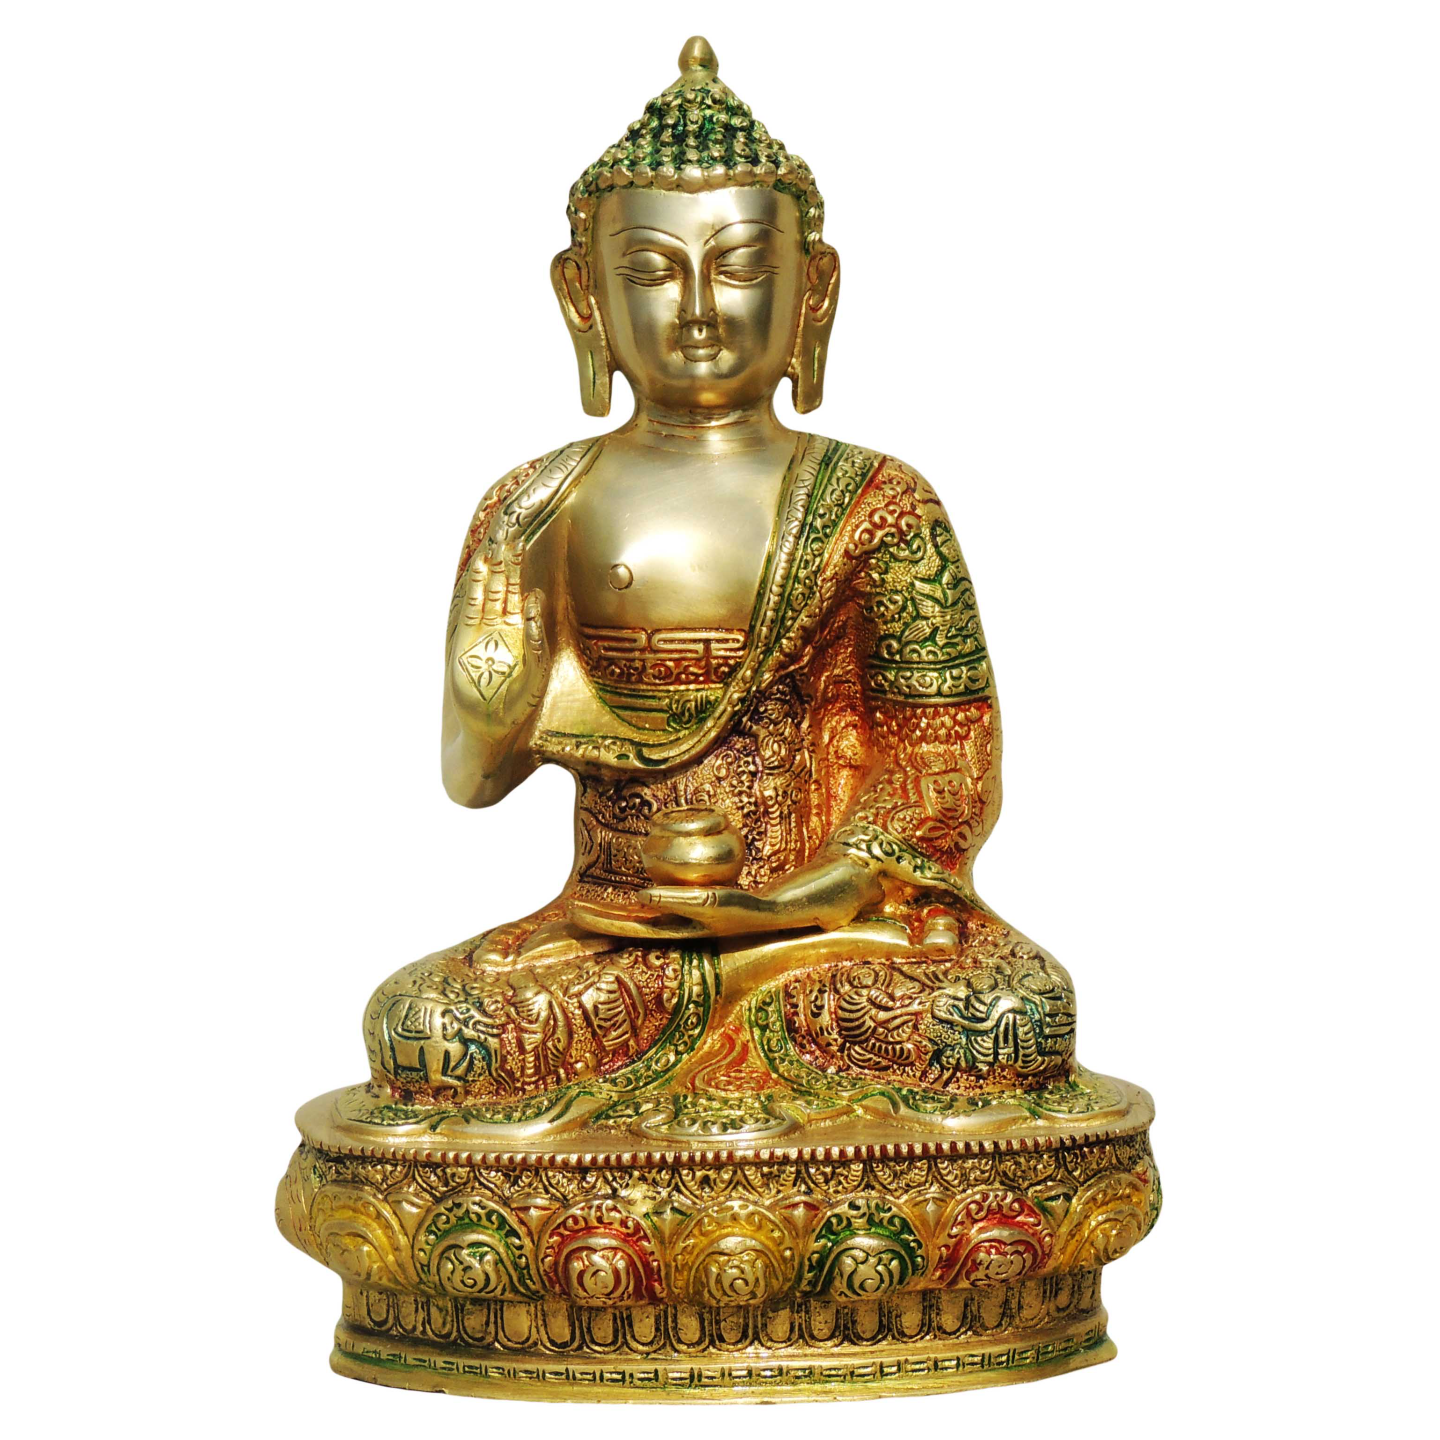 Brass Buddha Statue Murti Idol In Multicolour Lacquer Finish - 8.4*5*12.5 Inch  (BS660 B)